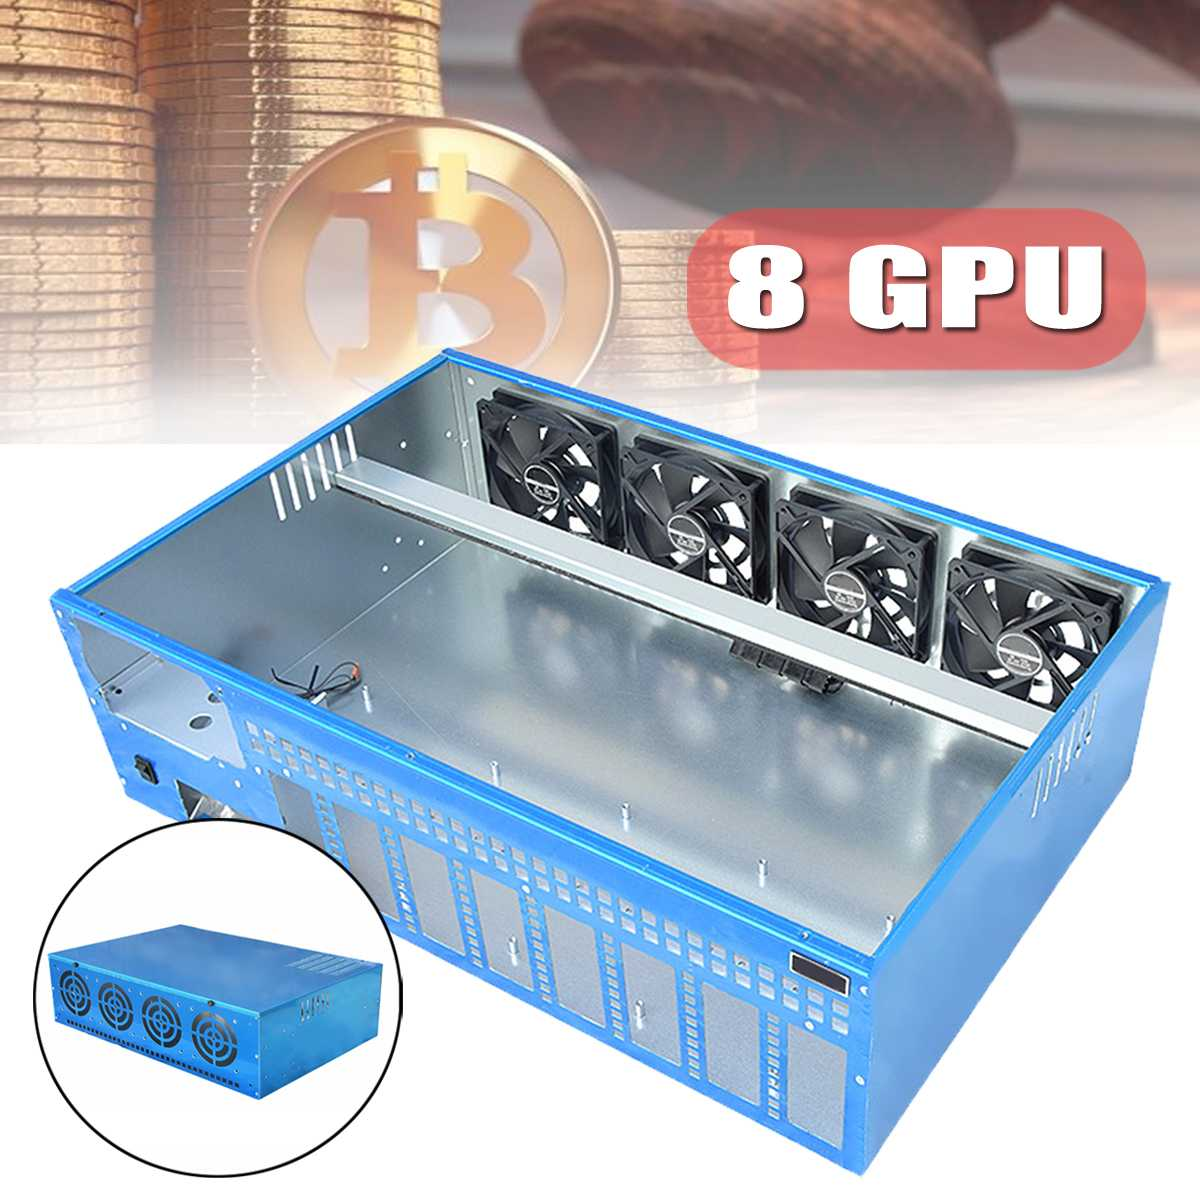 New 8GPU DIY Mining Frame Chassis PC Case Computer Case With 4 fans For Onda B250 BTC D8P-D3 Motherboard Computer Parts